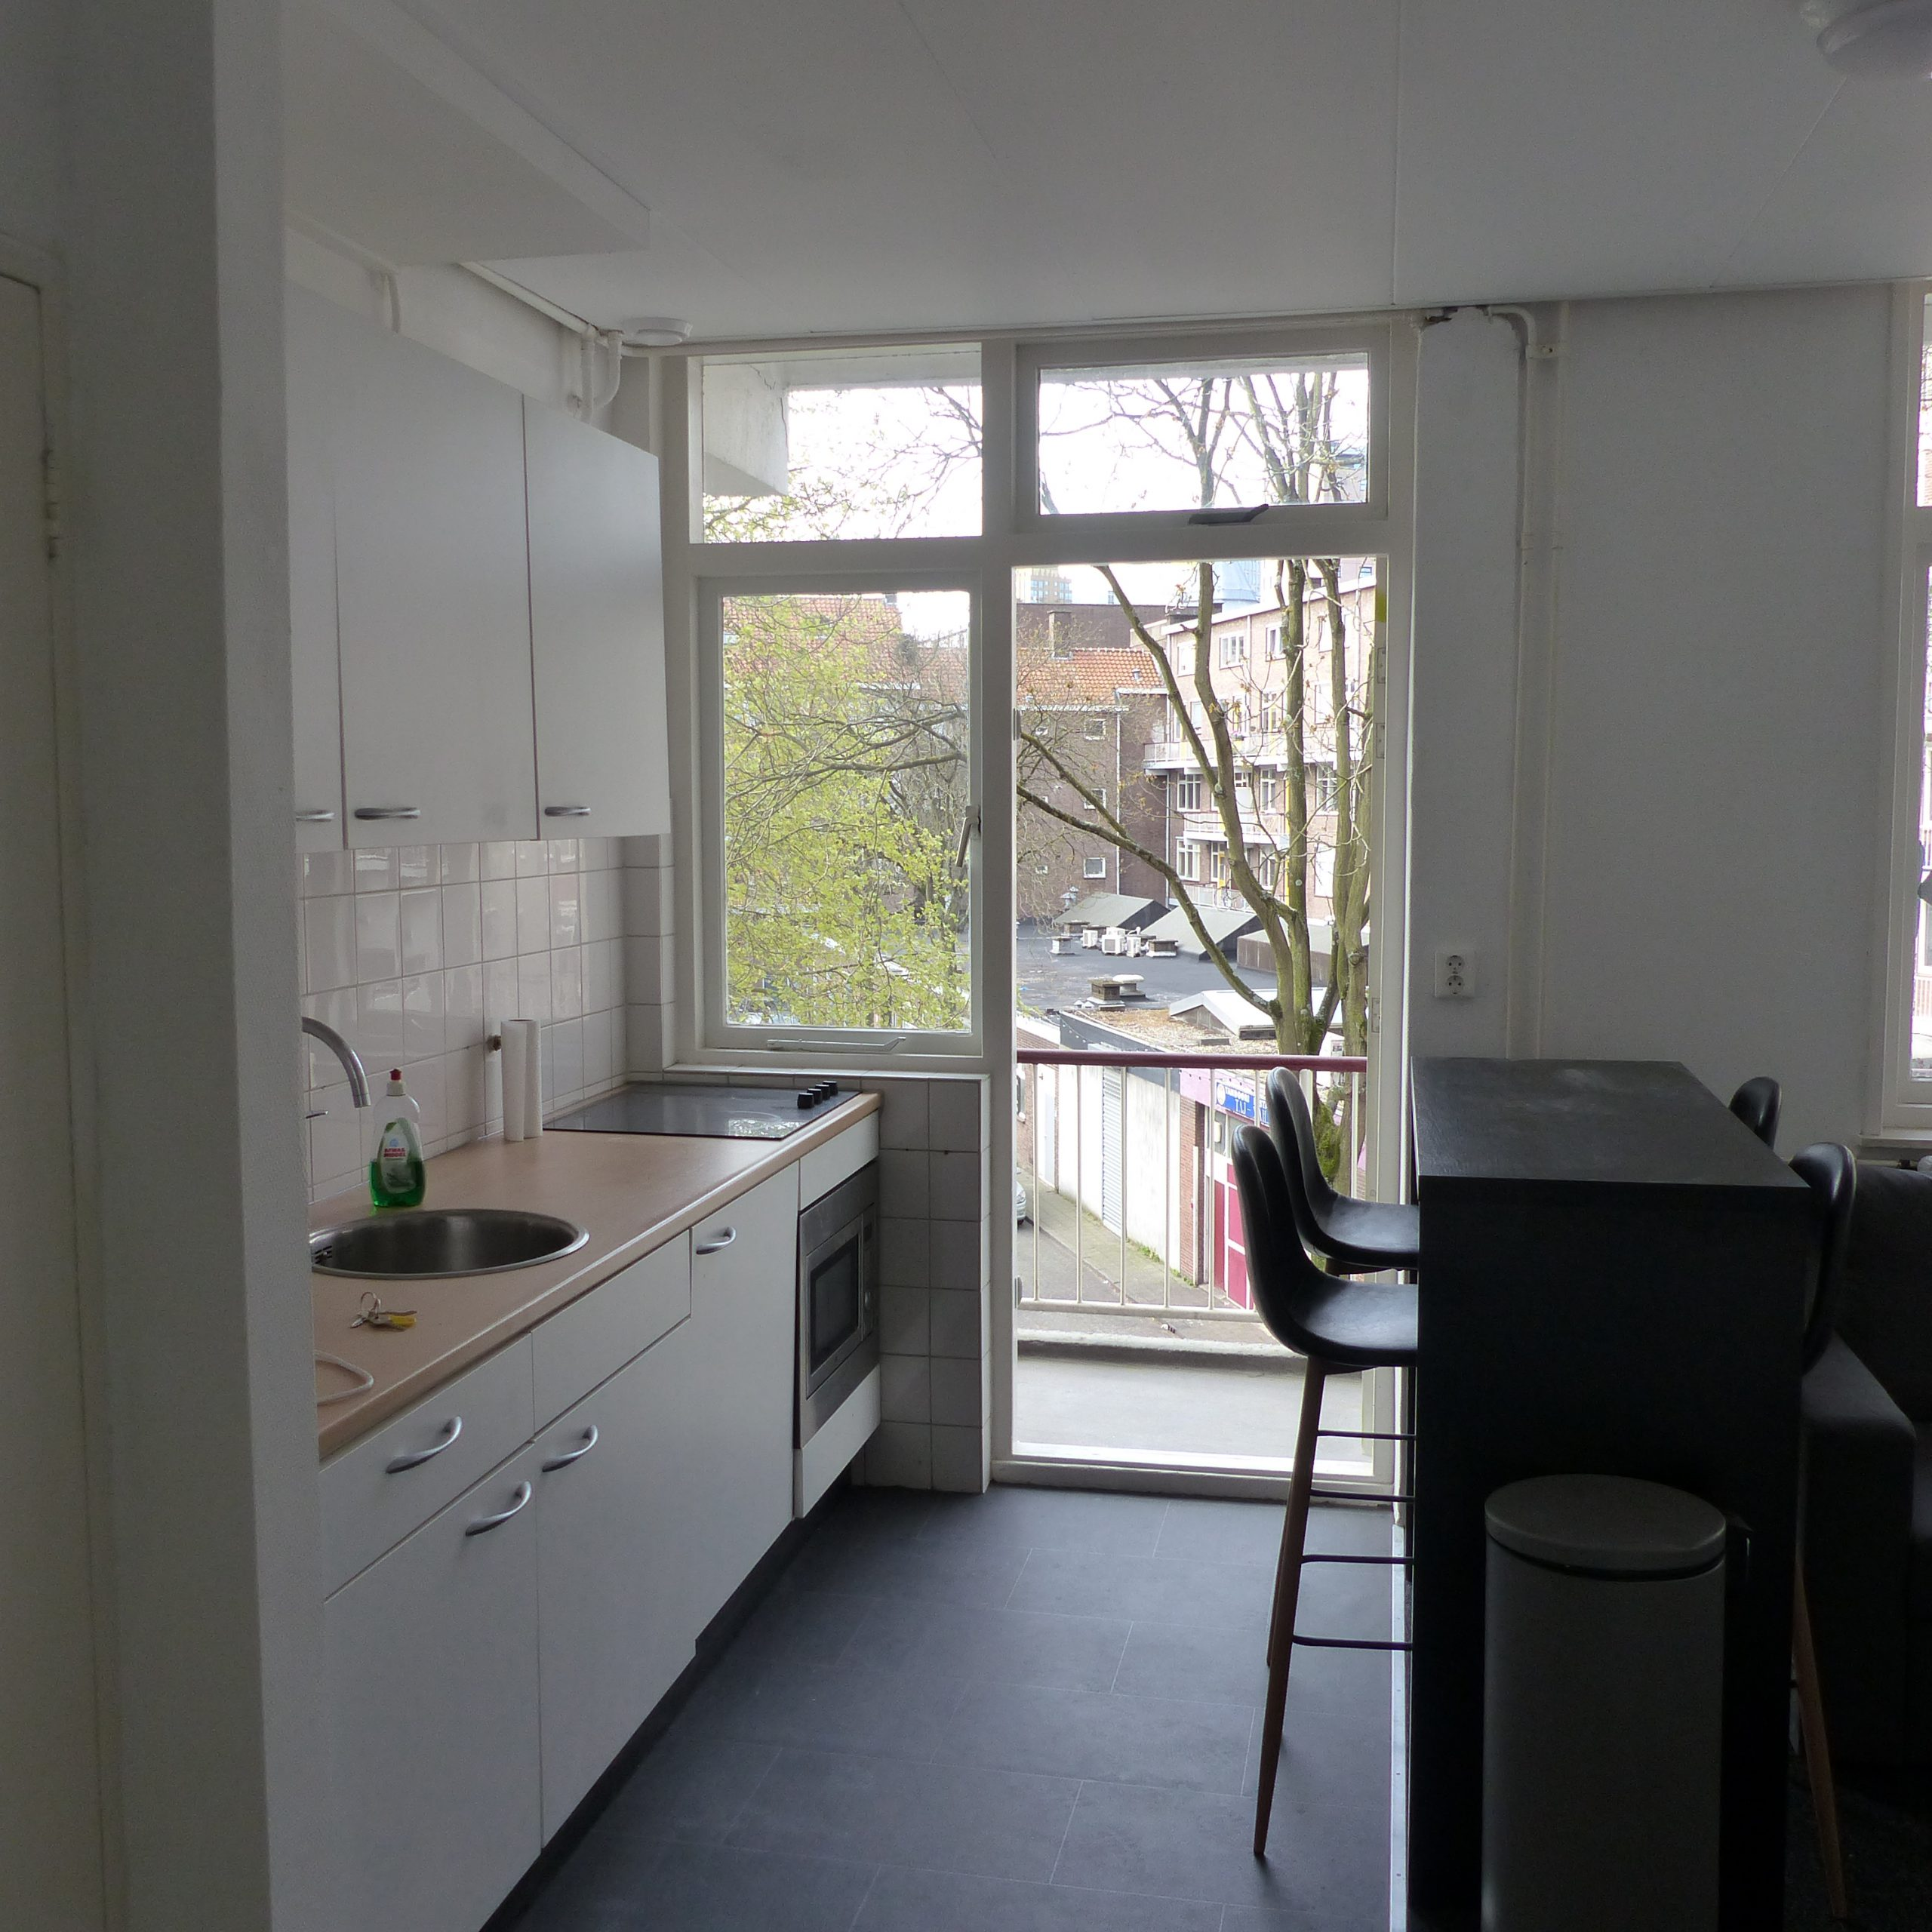 3 furnished student rooms